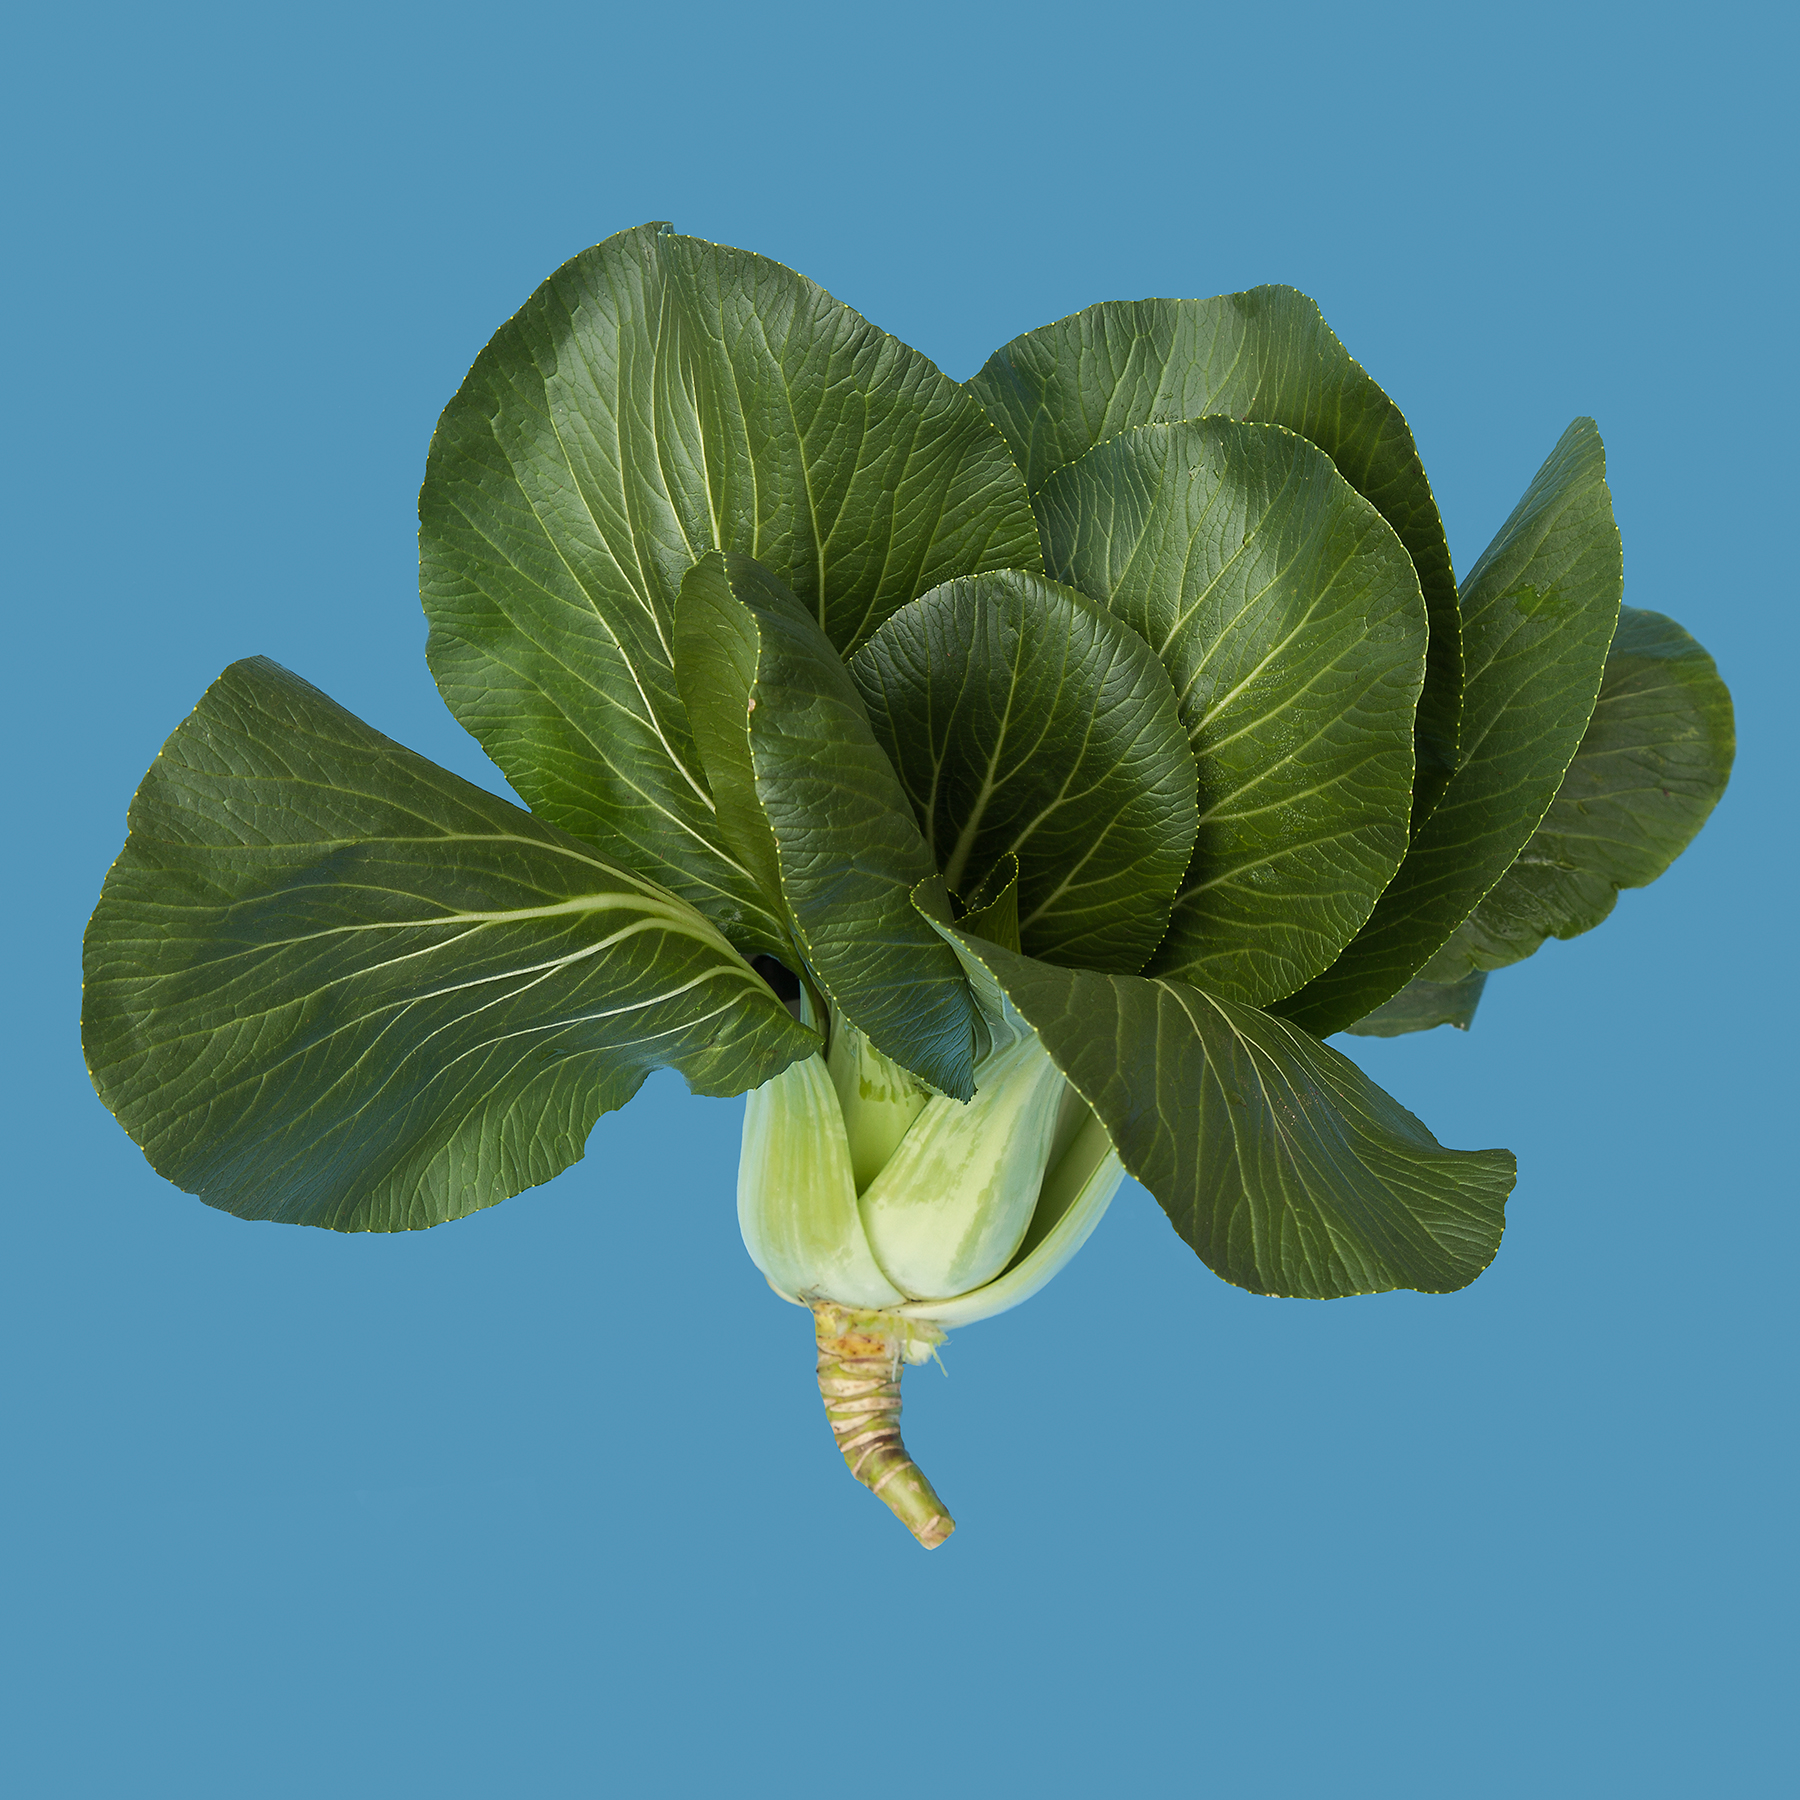 BOK-CHOY-ORGANIC-VEGETABLE-RIDGEWAY-FARM-CT-©-JONATHAN-R.-BECKERMAN-PHOTOGRAPHY-08260.jpg